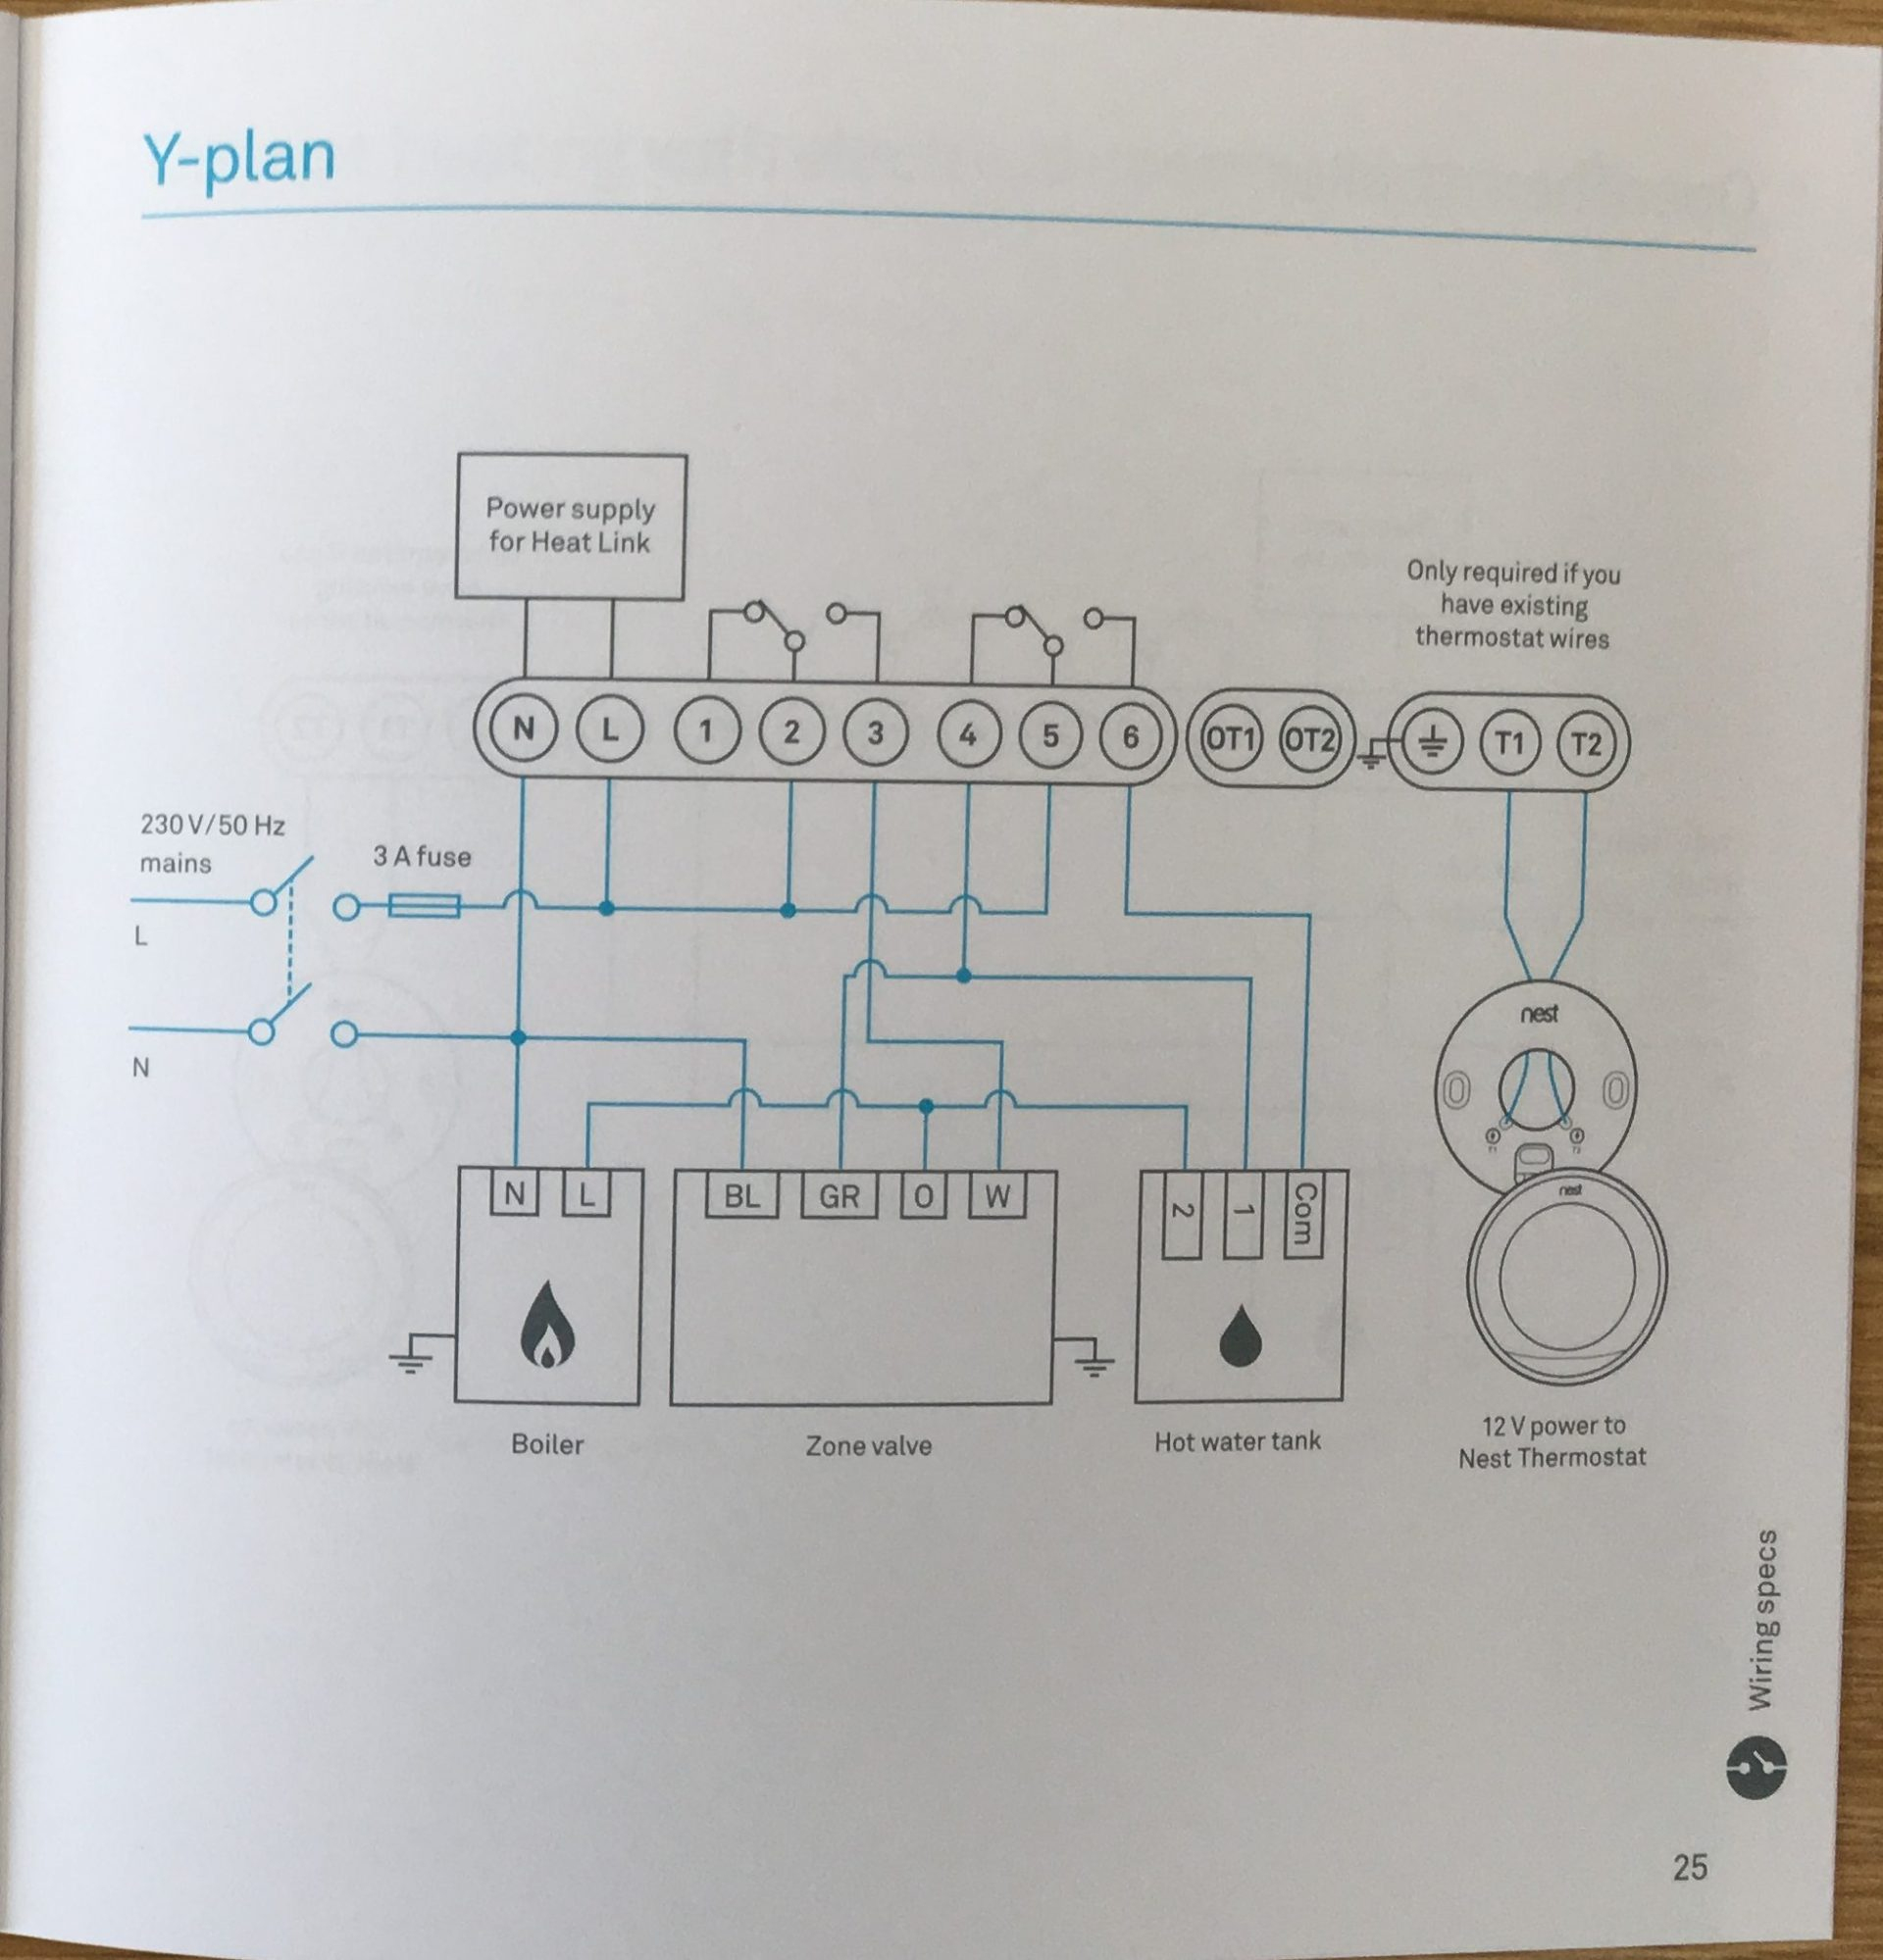 How To Install The Nest Learning Thermostat (3Rd Gen) In A Y-Plan - Nest Thermostat Wiring Diagram For Heat Only